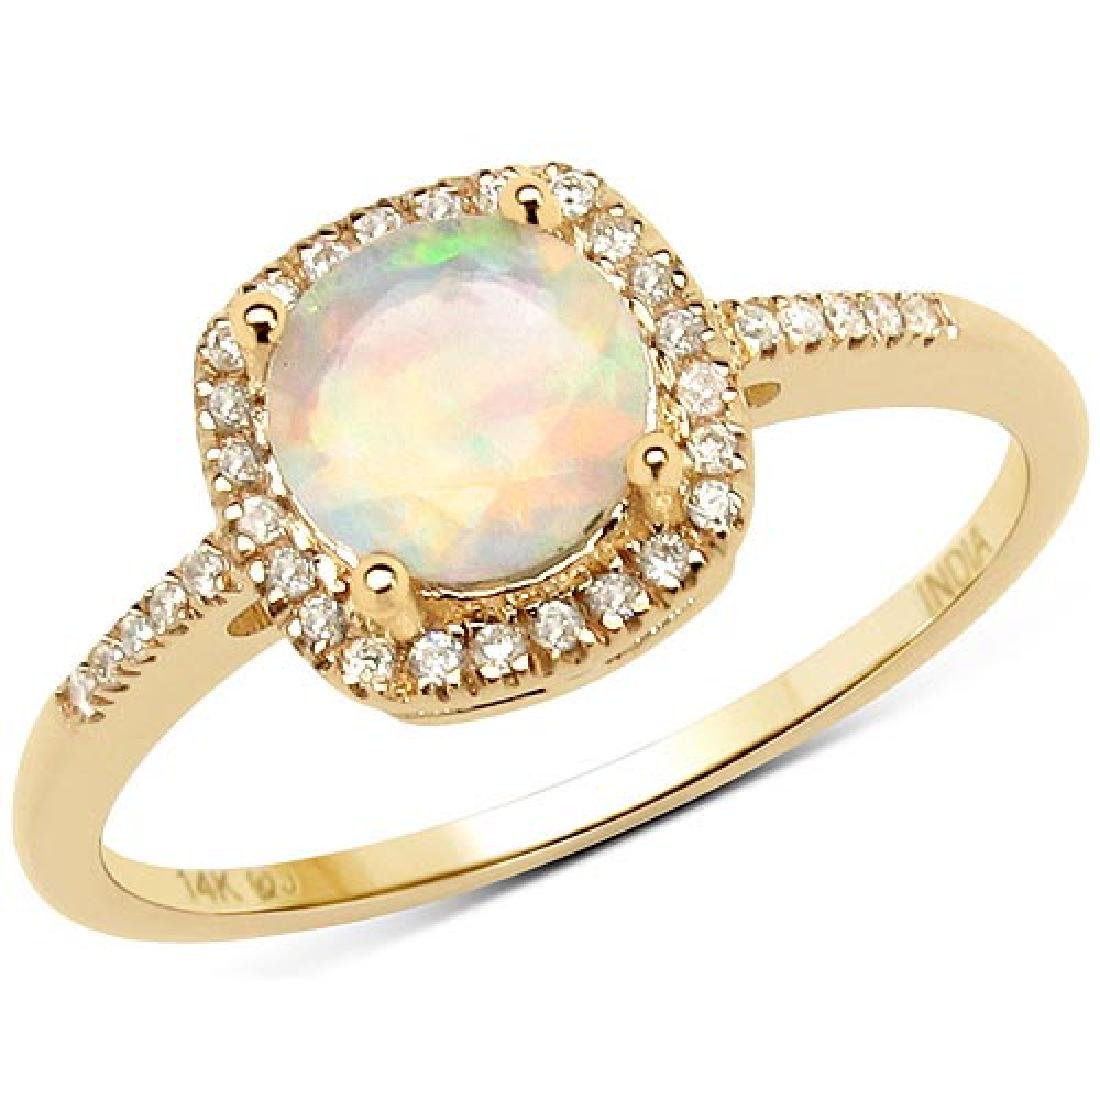 0.60 Carat Genuine Ethiopian Opal and White Diamond 14K